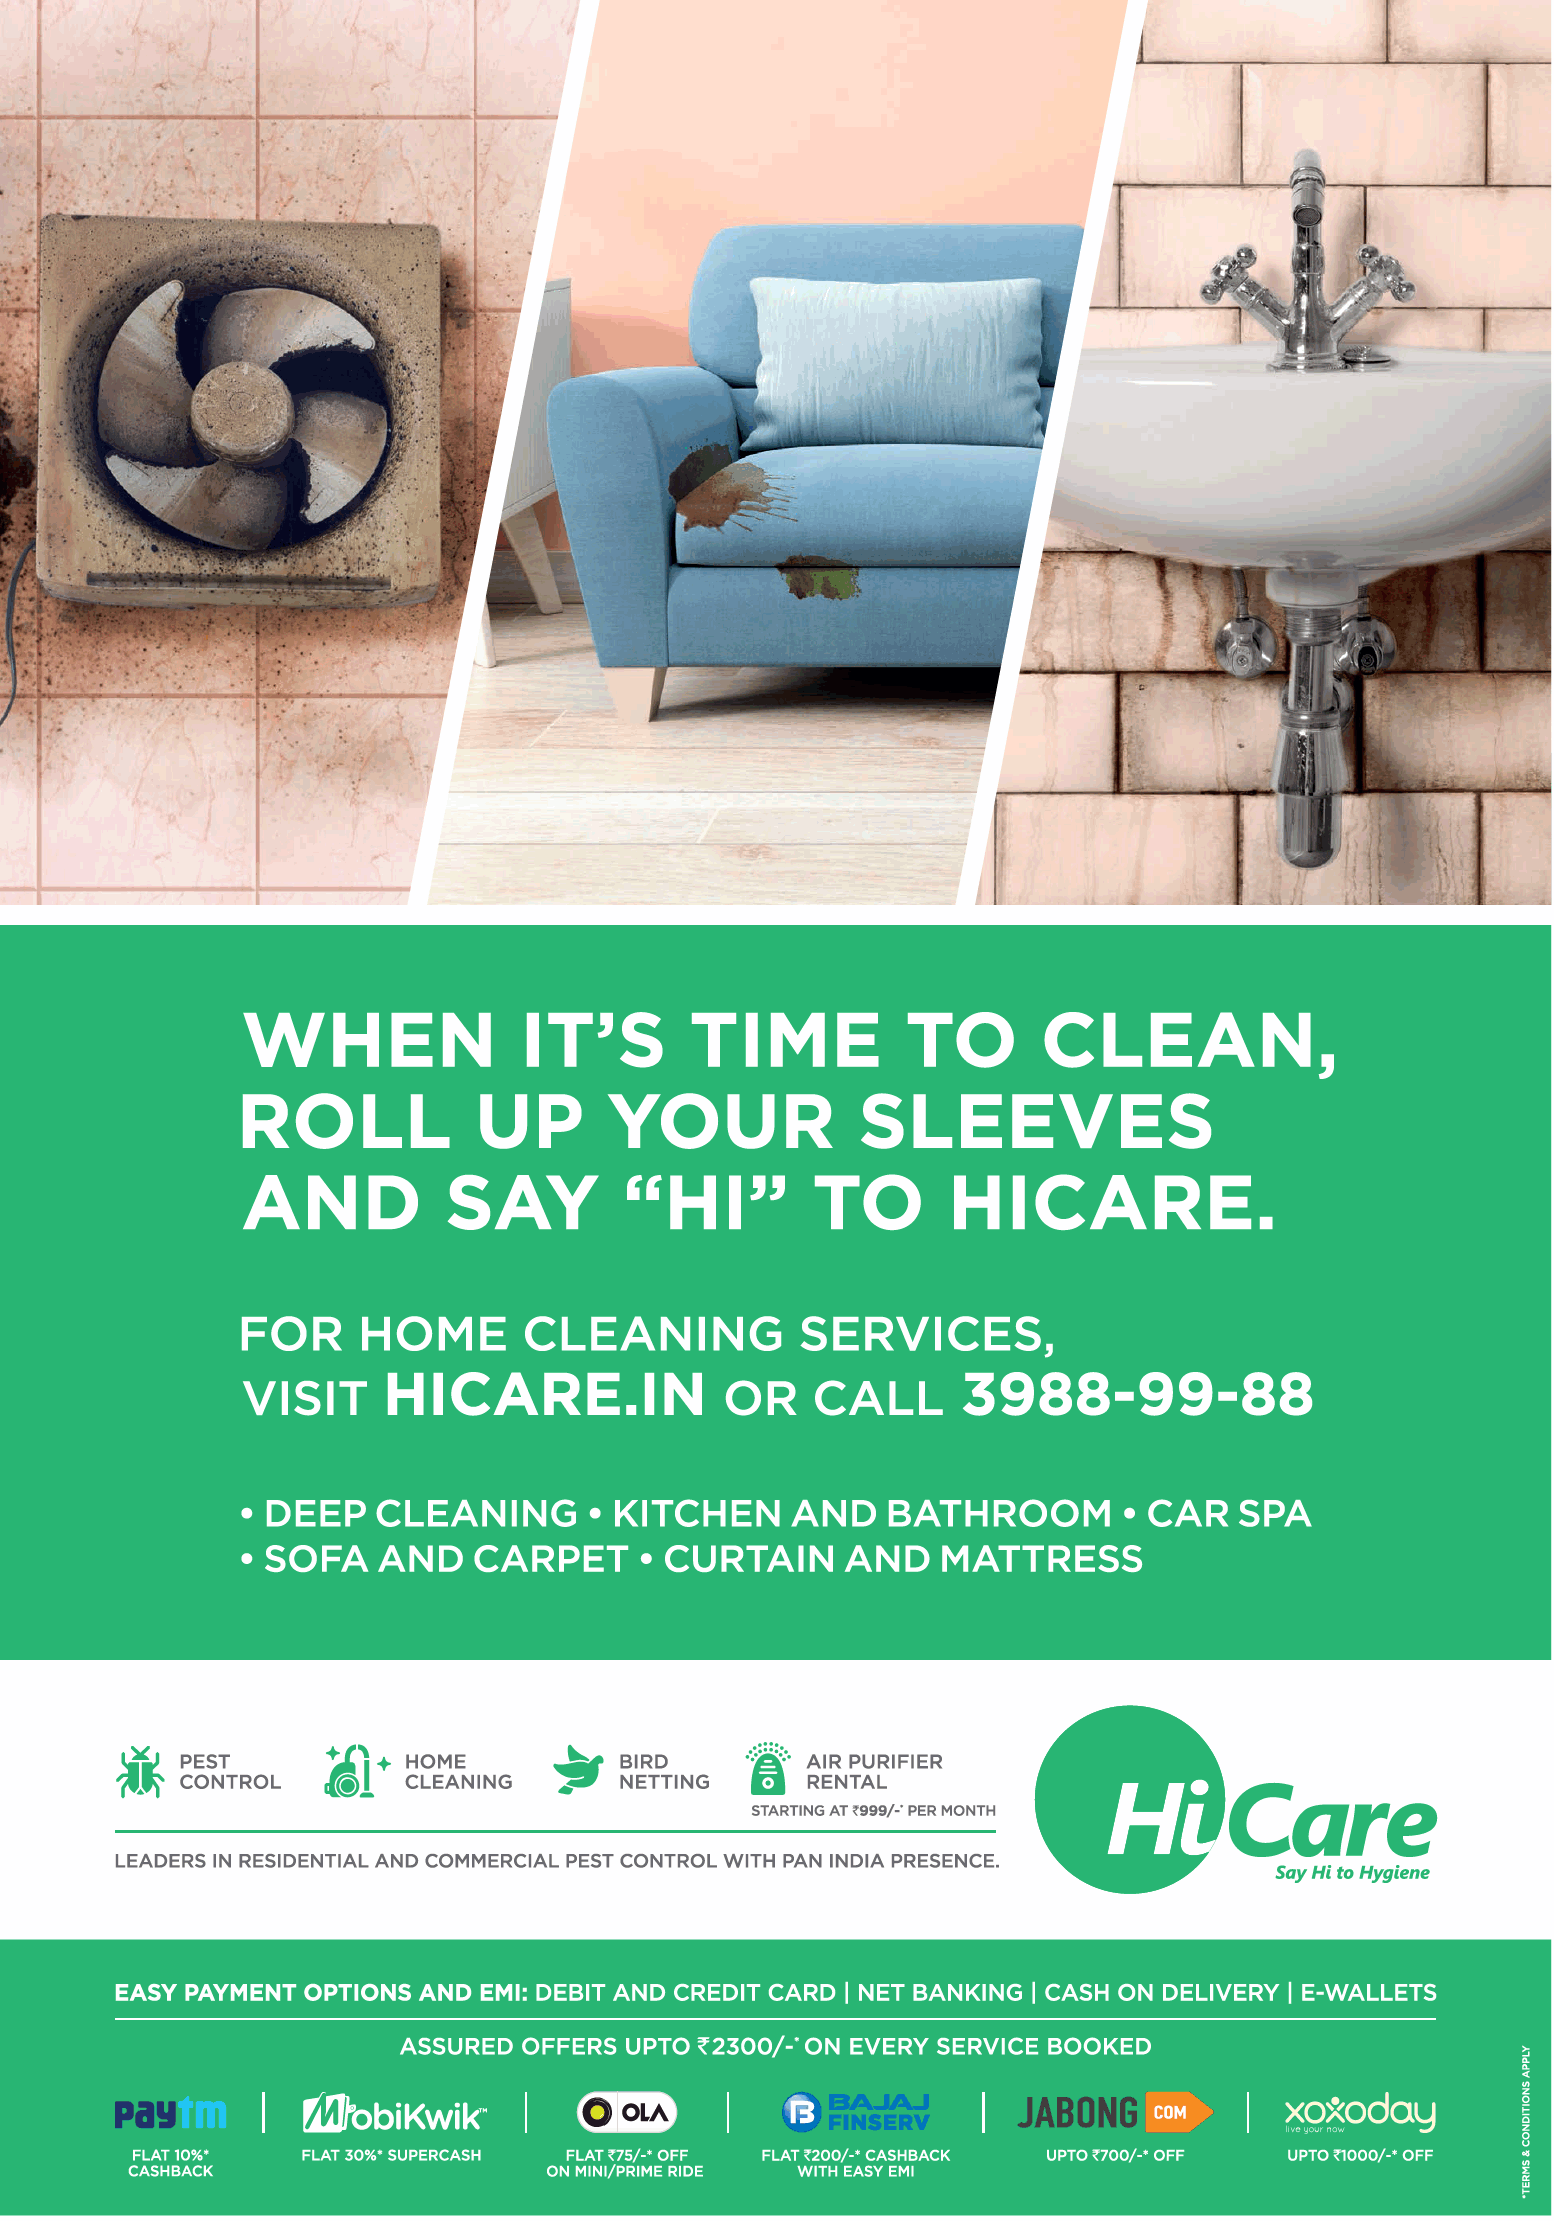 Hicare, India's no. 1 home and commercial hygiene brand